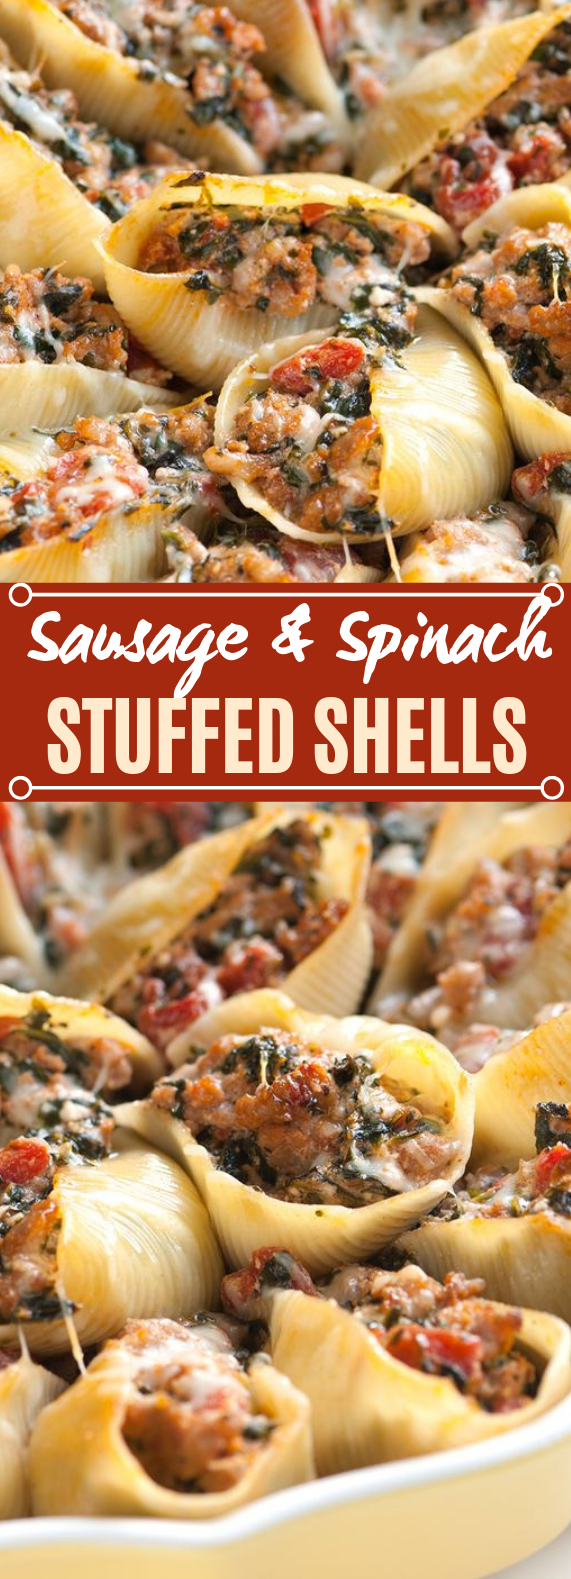 Sausage Stuffed Shells with Spinach #dinner #easy